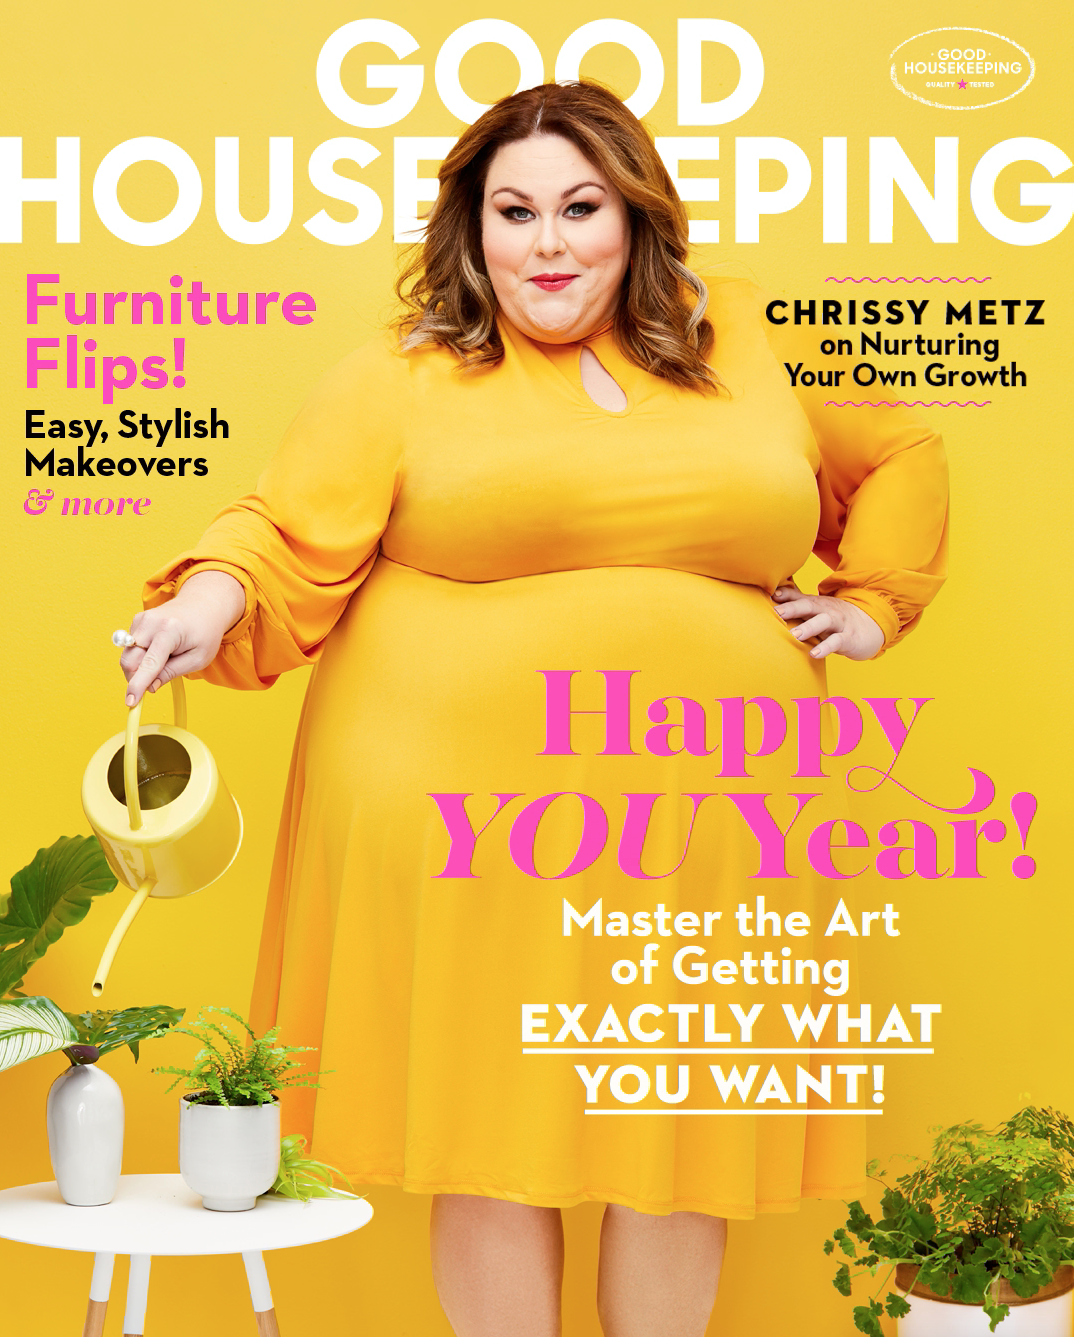 Metz Christmas Party 2020 This Is Us' Star Chrissy Metz on Her Goals for 2020   GH January